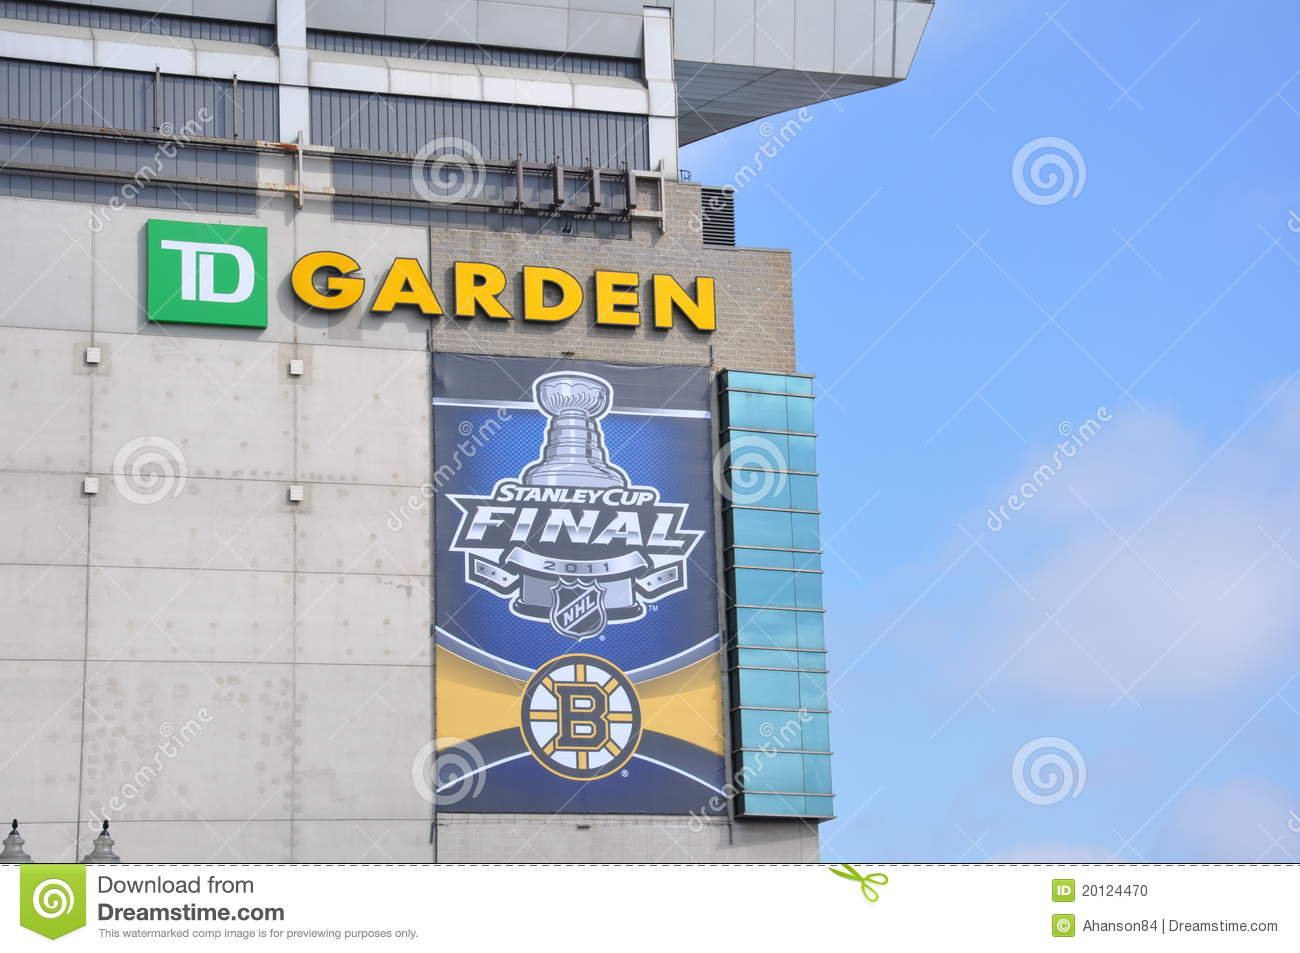 Stanley Cup Finals On The Td Garden Editorial Image Image 20124470